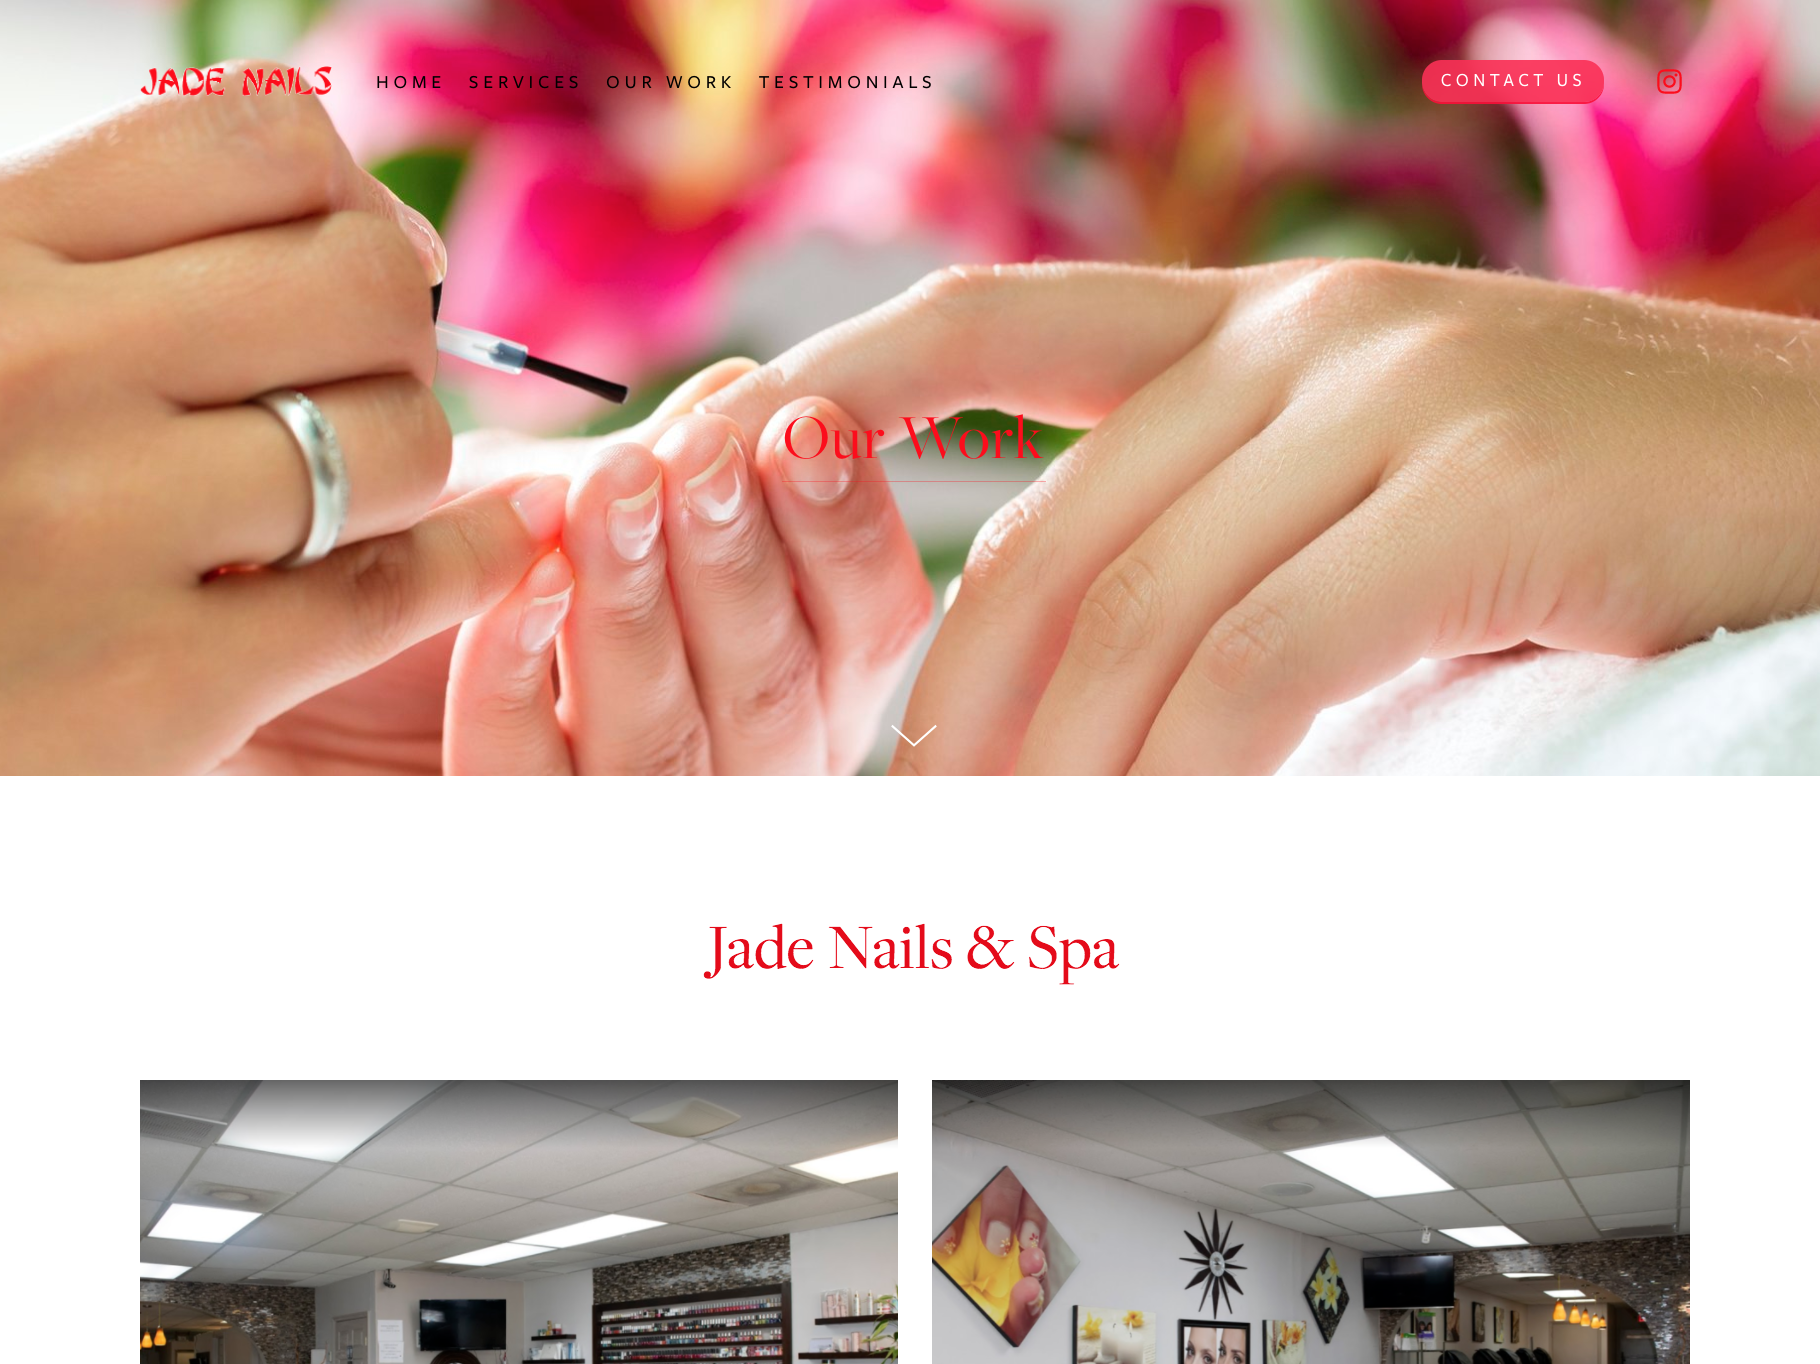 Jade Nails & Spa